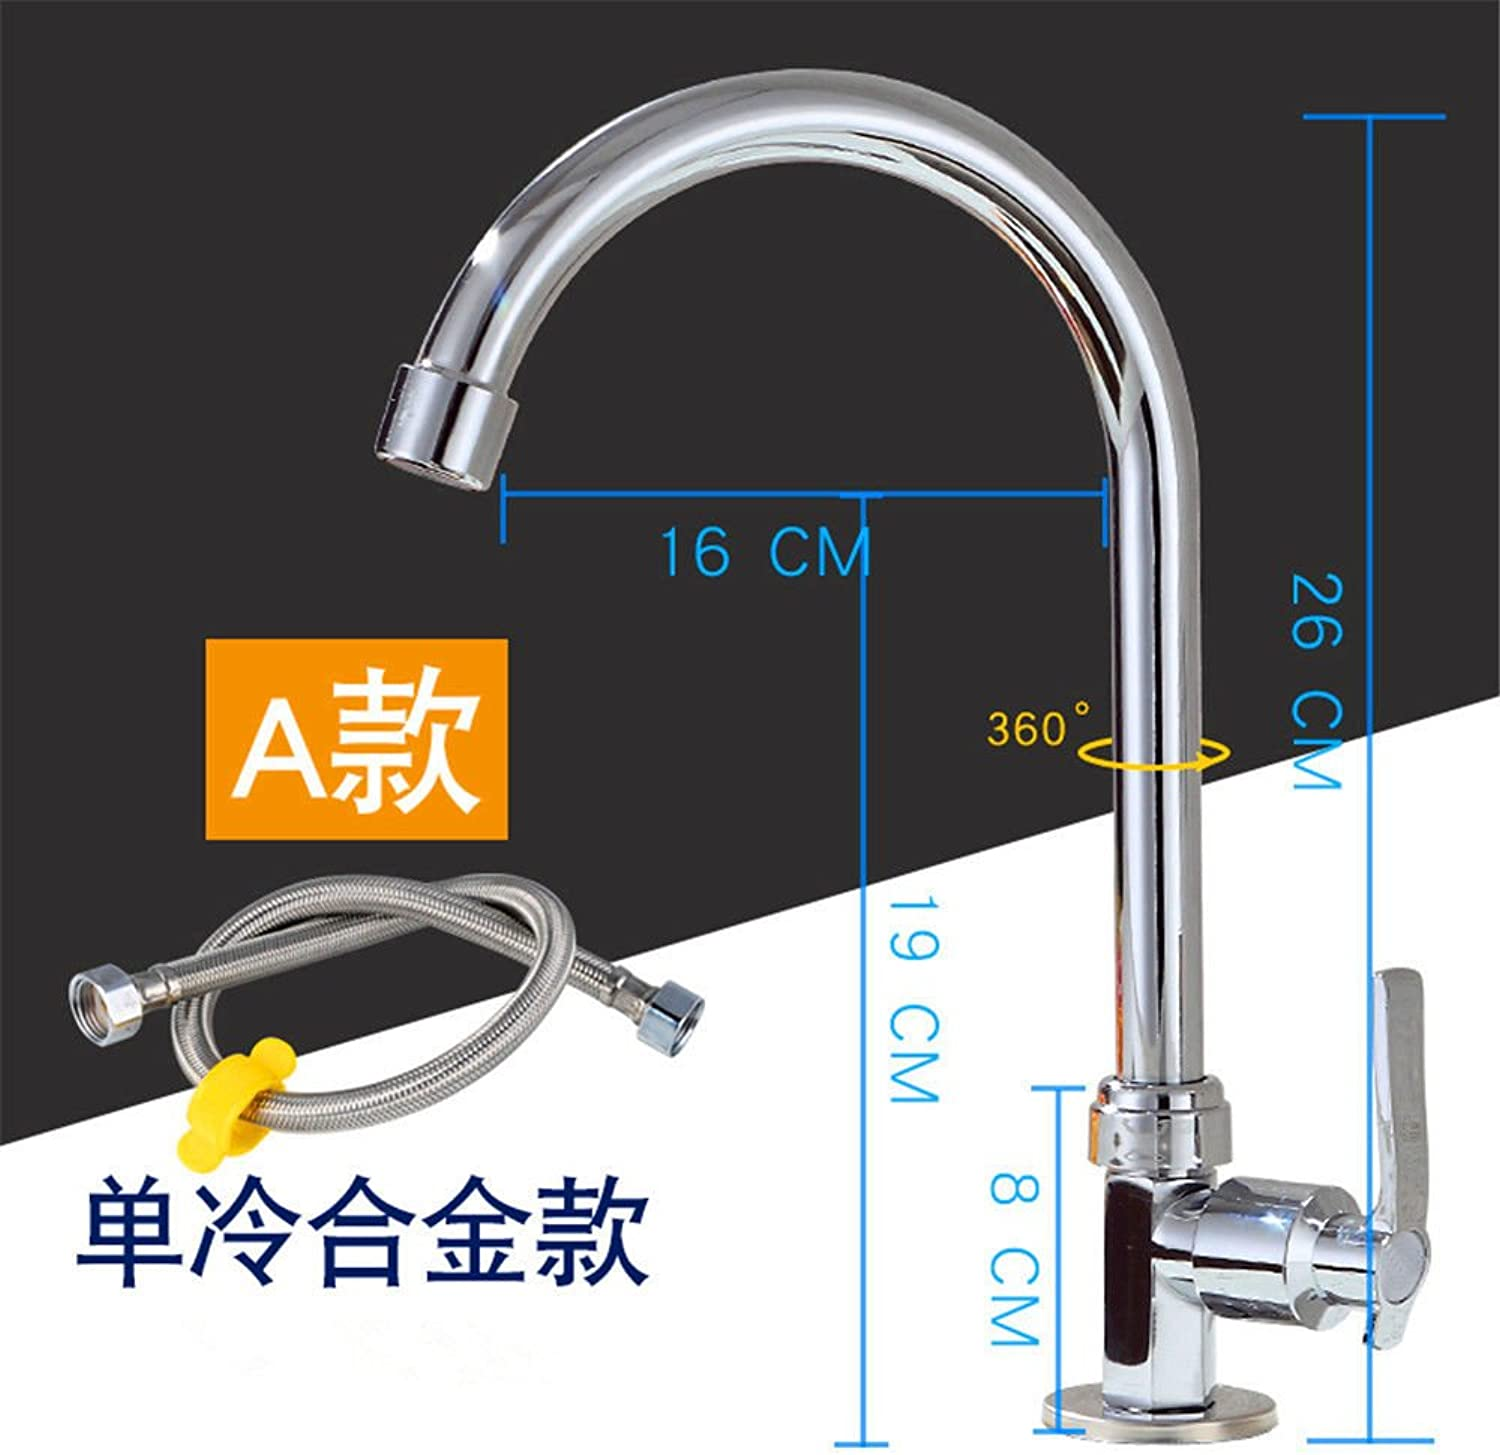 Gyps Faucet Basin Mixer Tap Waterfall Faucet Antique Bathroom The Kitchen dish washing basin of cold water faucet brass body-wide single cold kitchen stainless steel sink laundry pool basin mixer